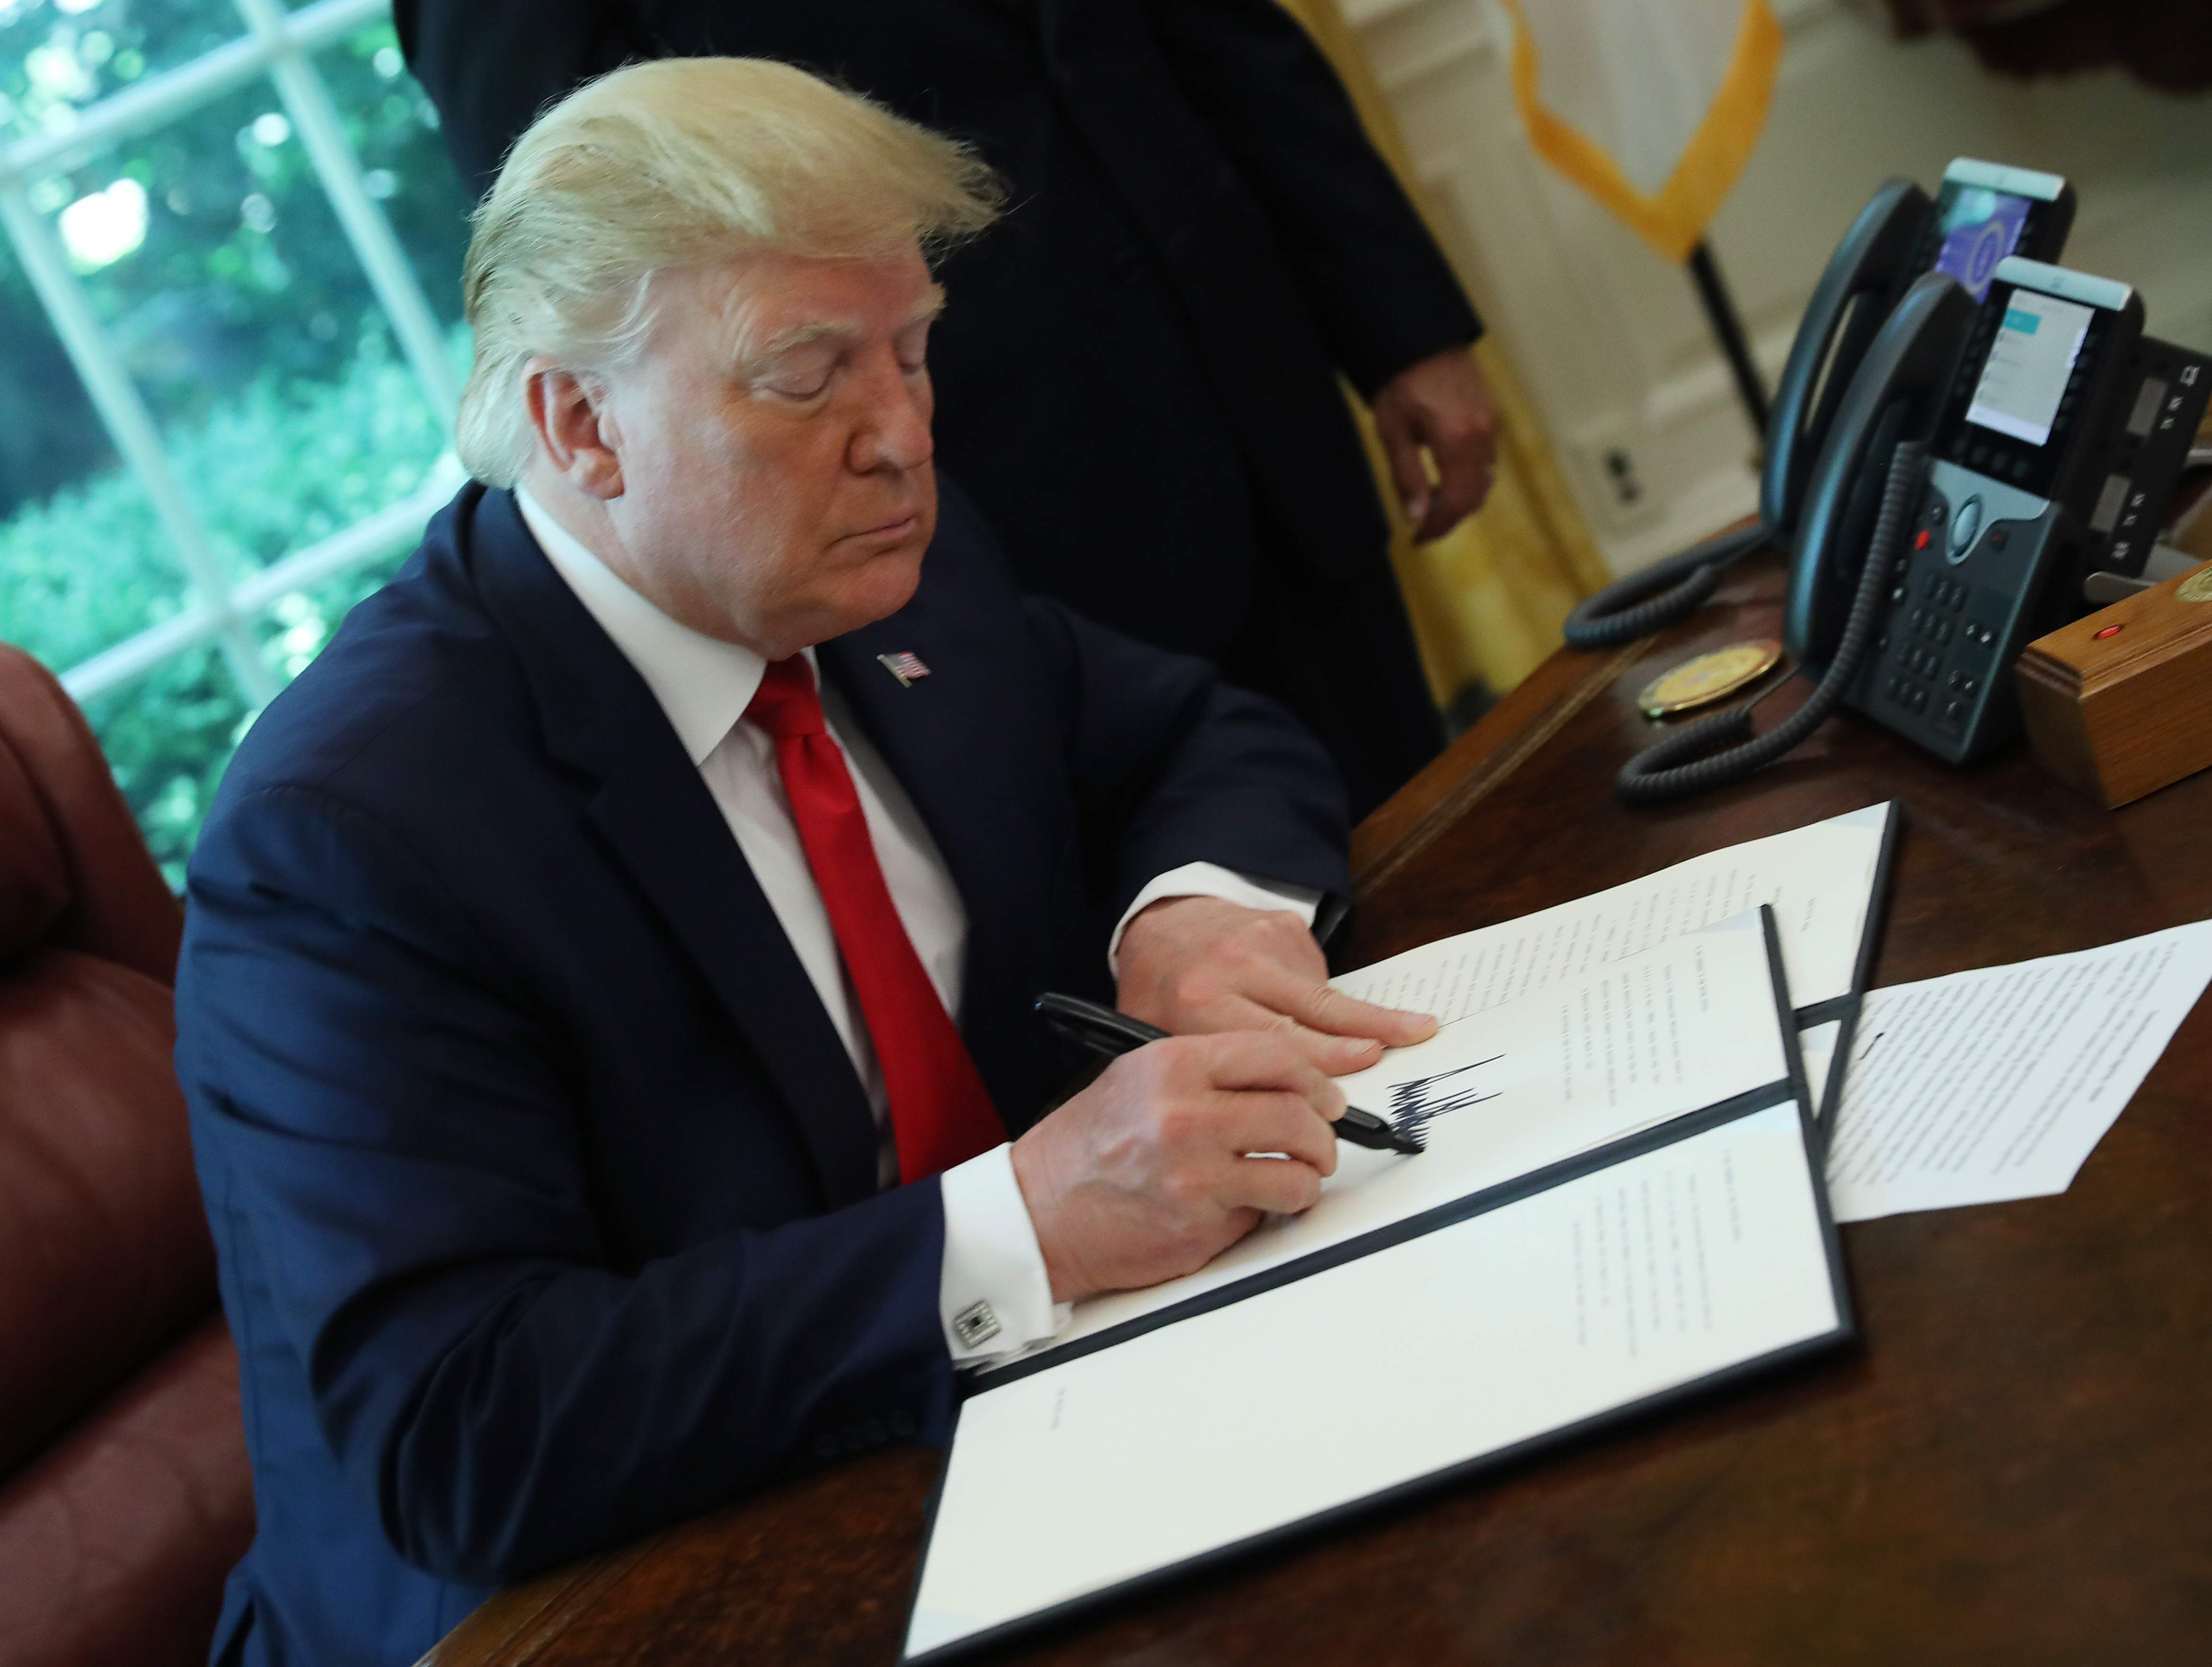 President Trump Signs Executive Order For New Sanctions On Iran